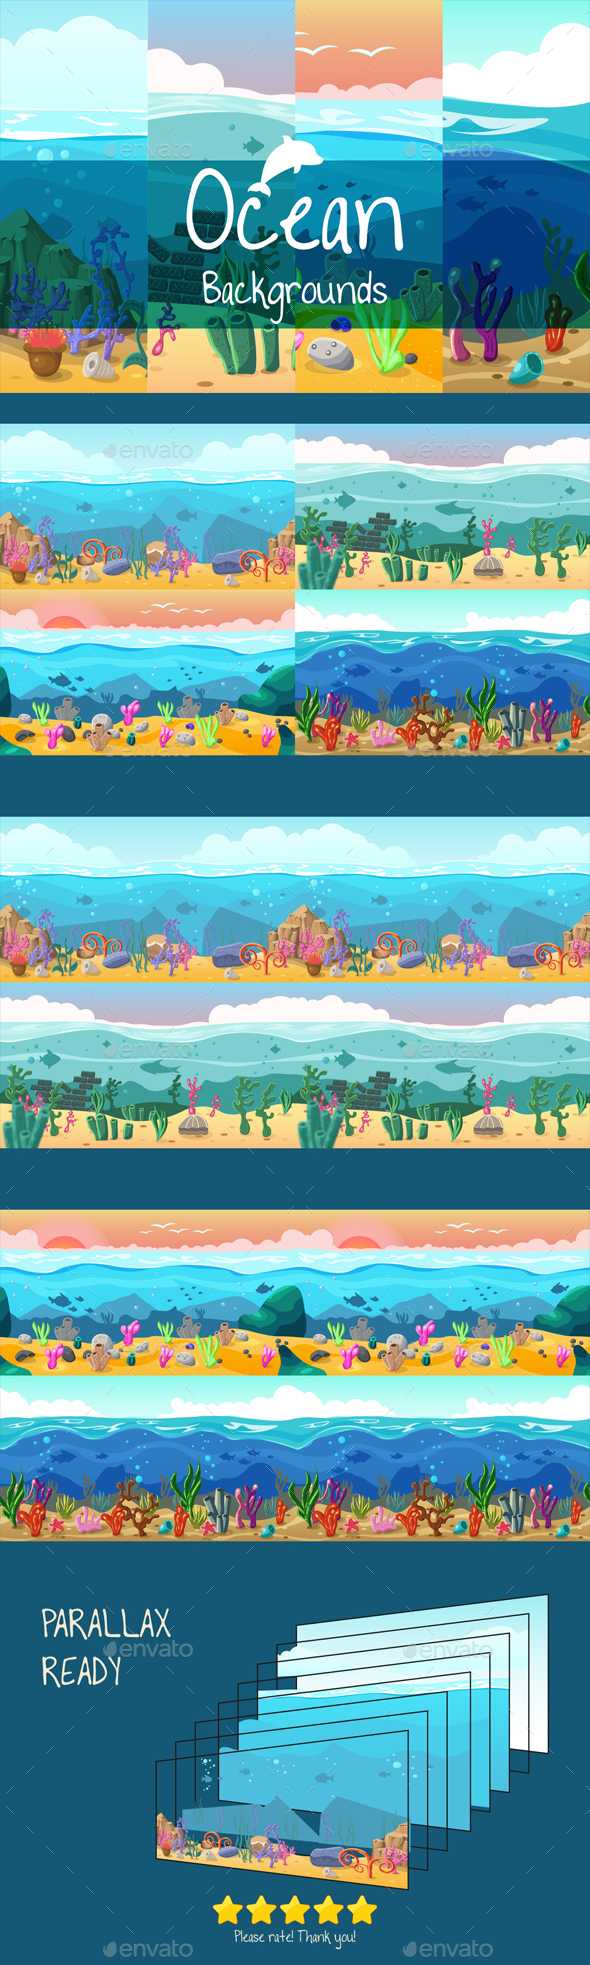 GraphicRiver Parallax Ocean 2D Backgrounds 20986998